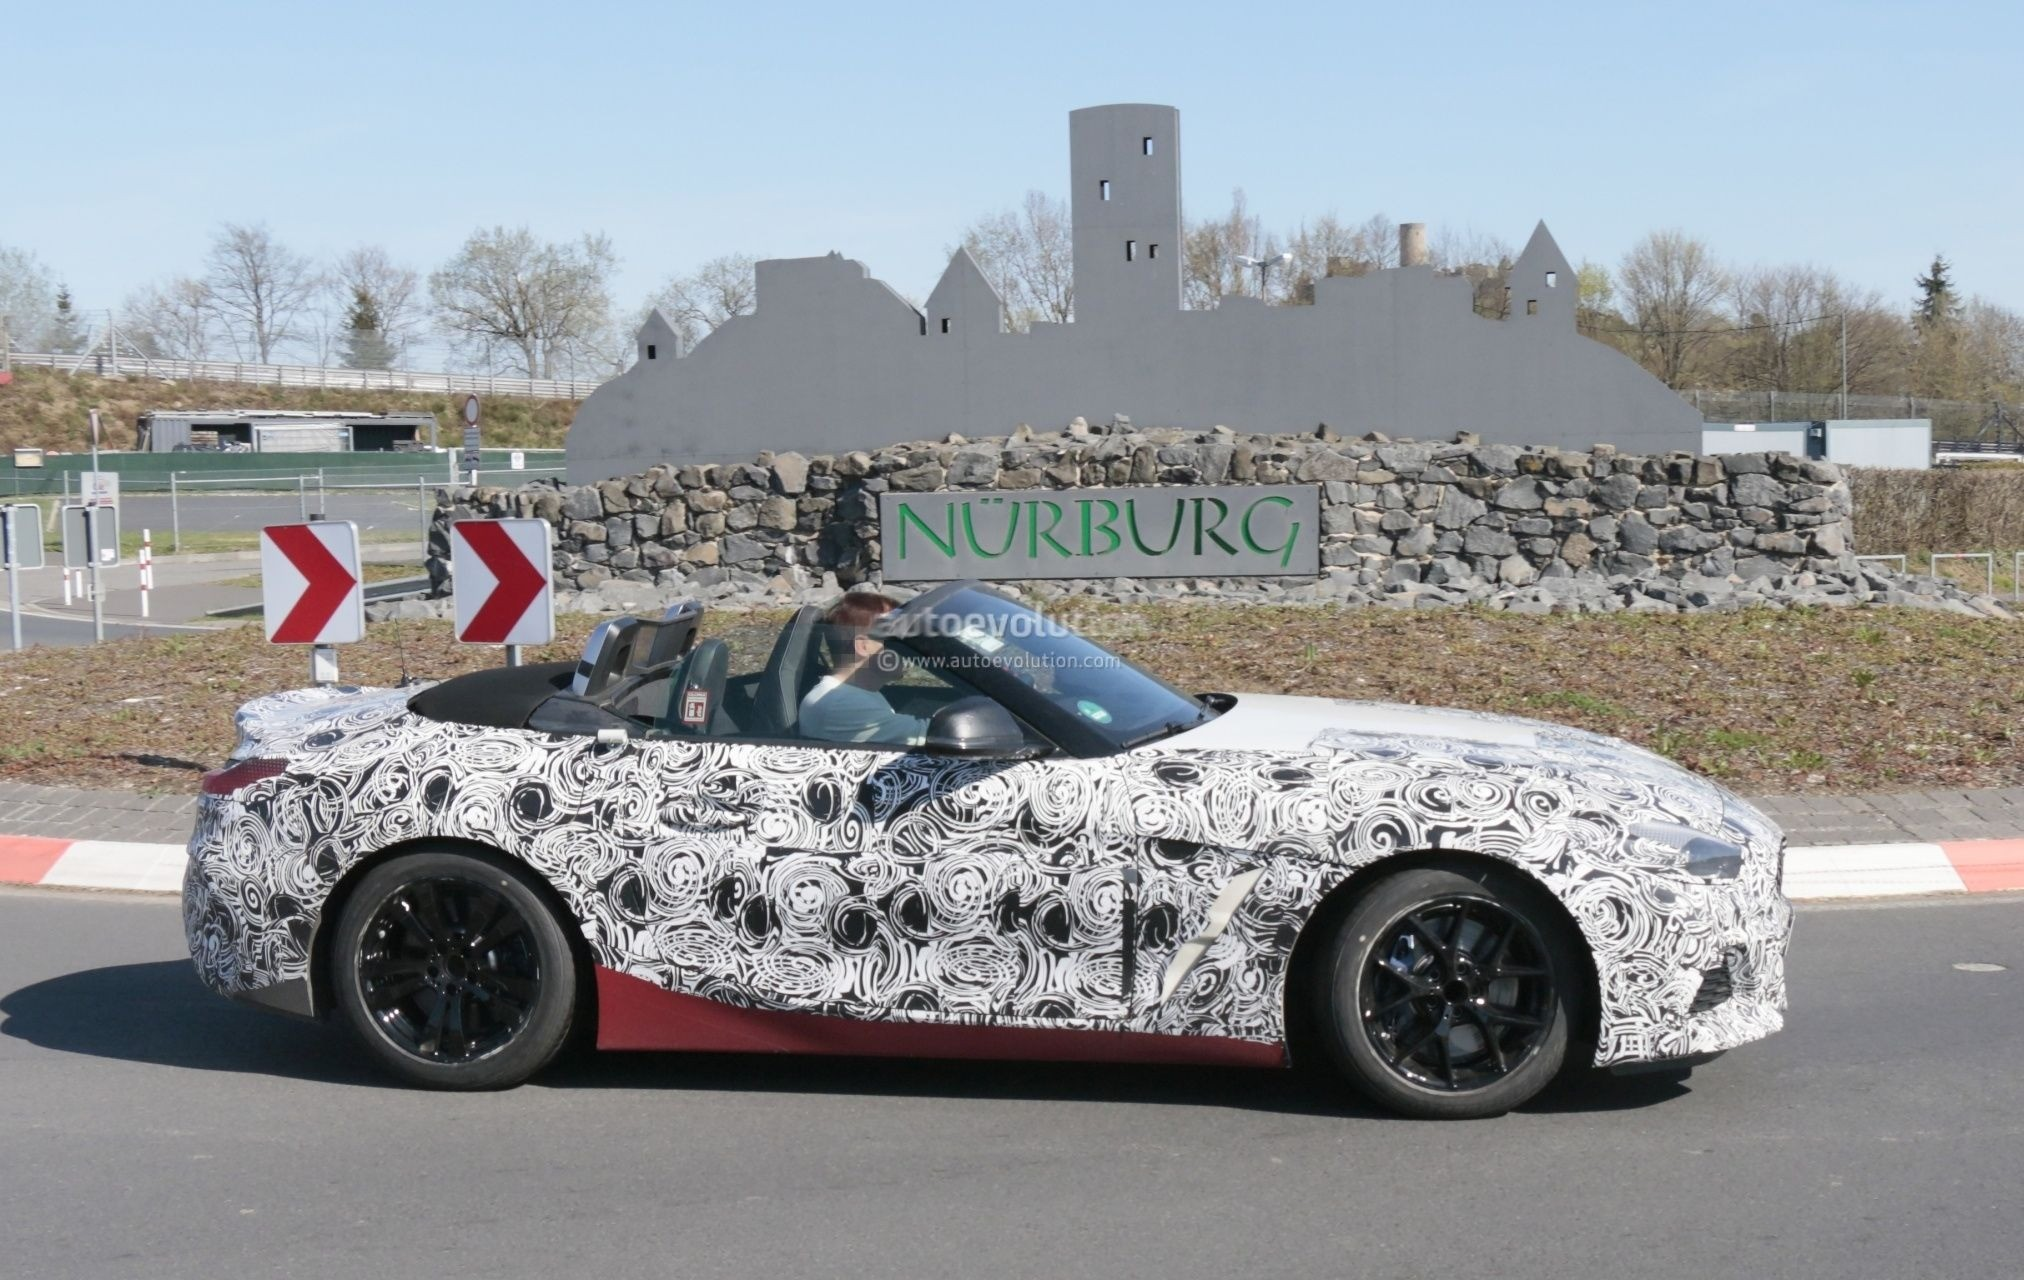 2019 Bmw Z4 Spied With Top Down Reveals Interior With Operating System 7 0 Autoevolution